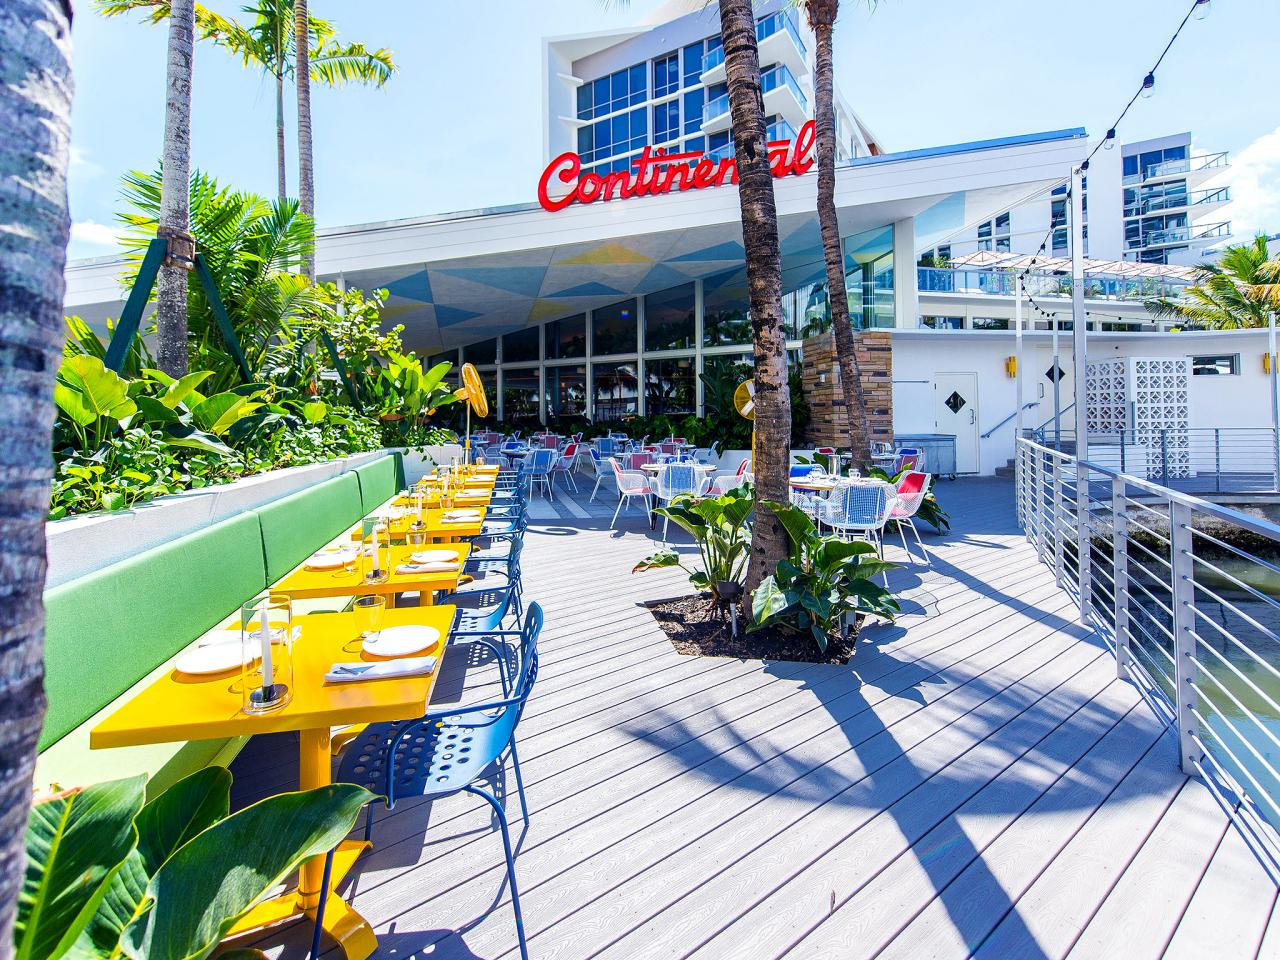 Famed Restaurateur Stephen Starr Recently Launched Continental An Outpost Of His Original Philly Restaurant The Same Name In South Beach To Much